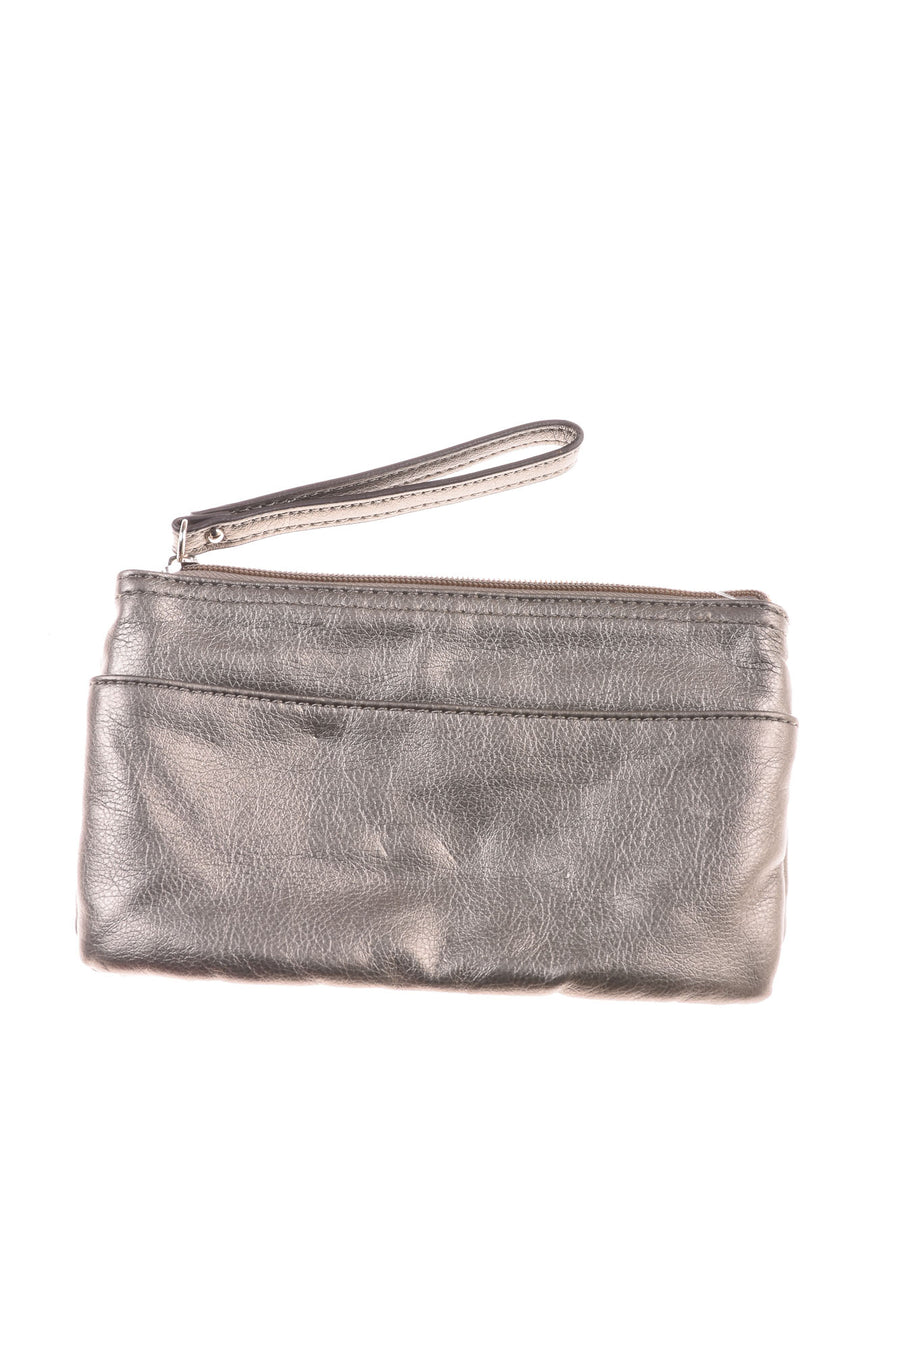 Women's Clutch By Elle